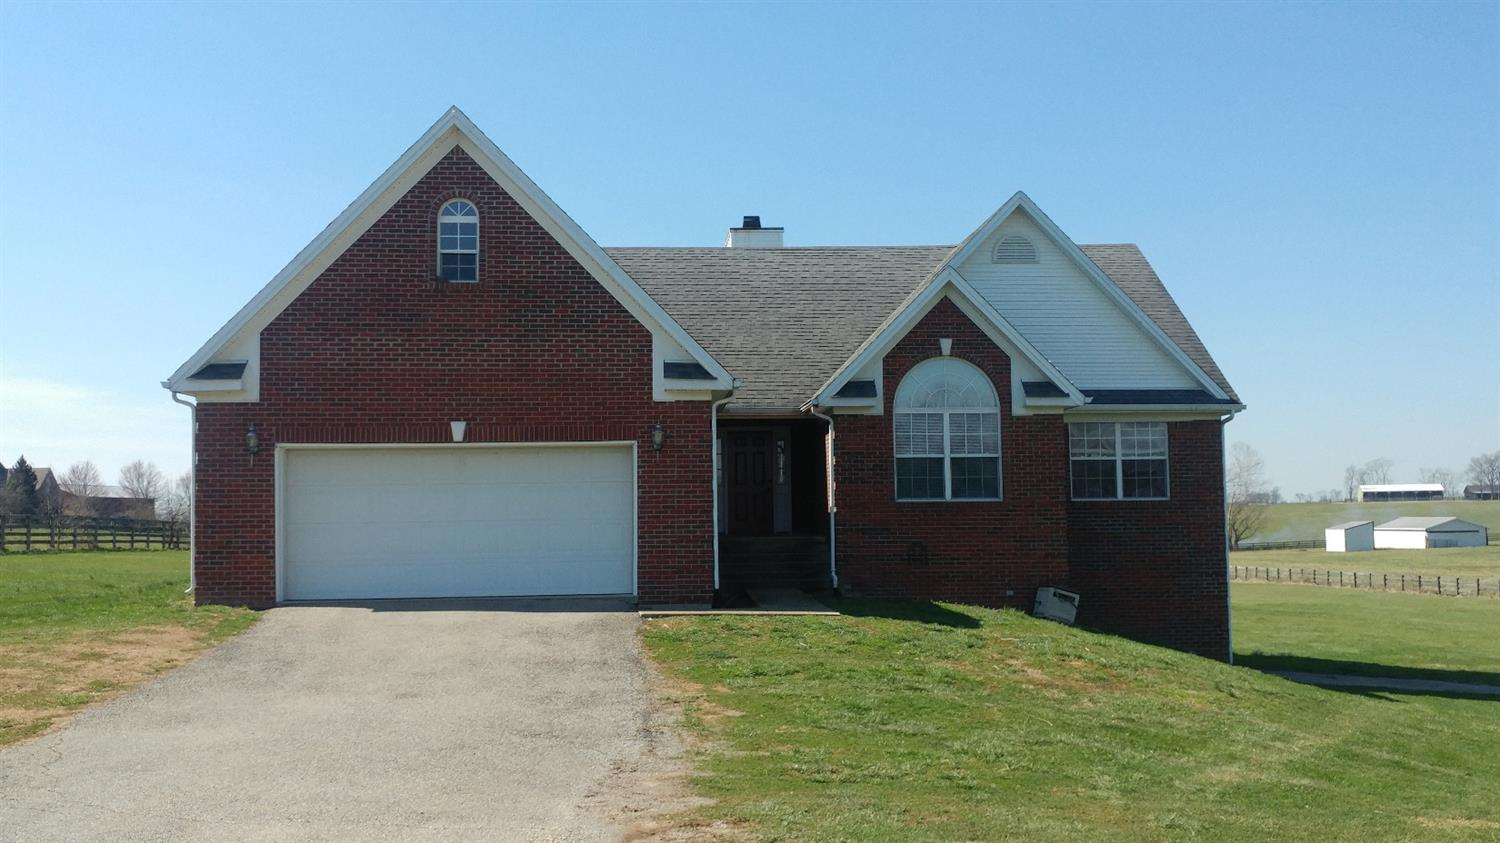 Home For Sale at 551 Anderson Rd, Georgetown, KY 40324